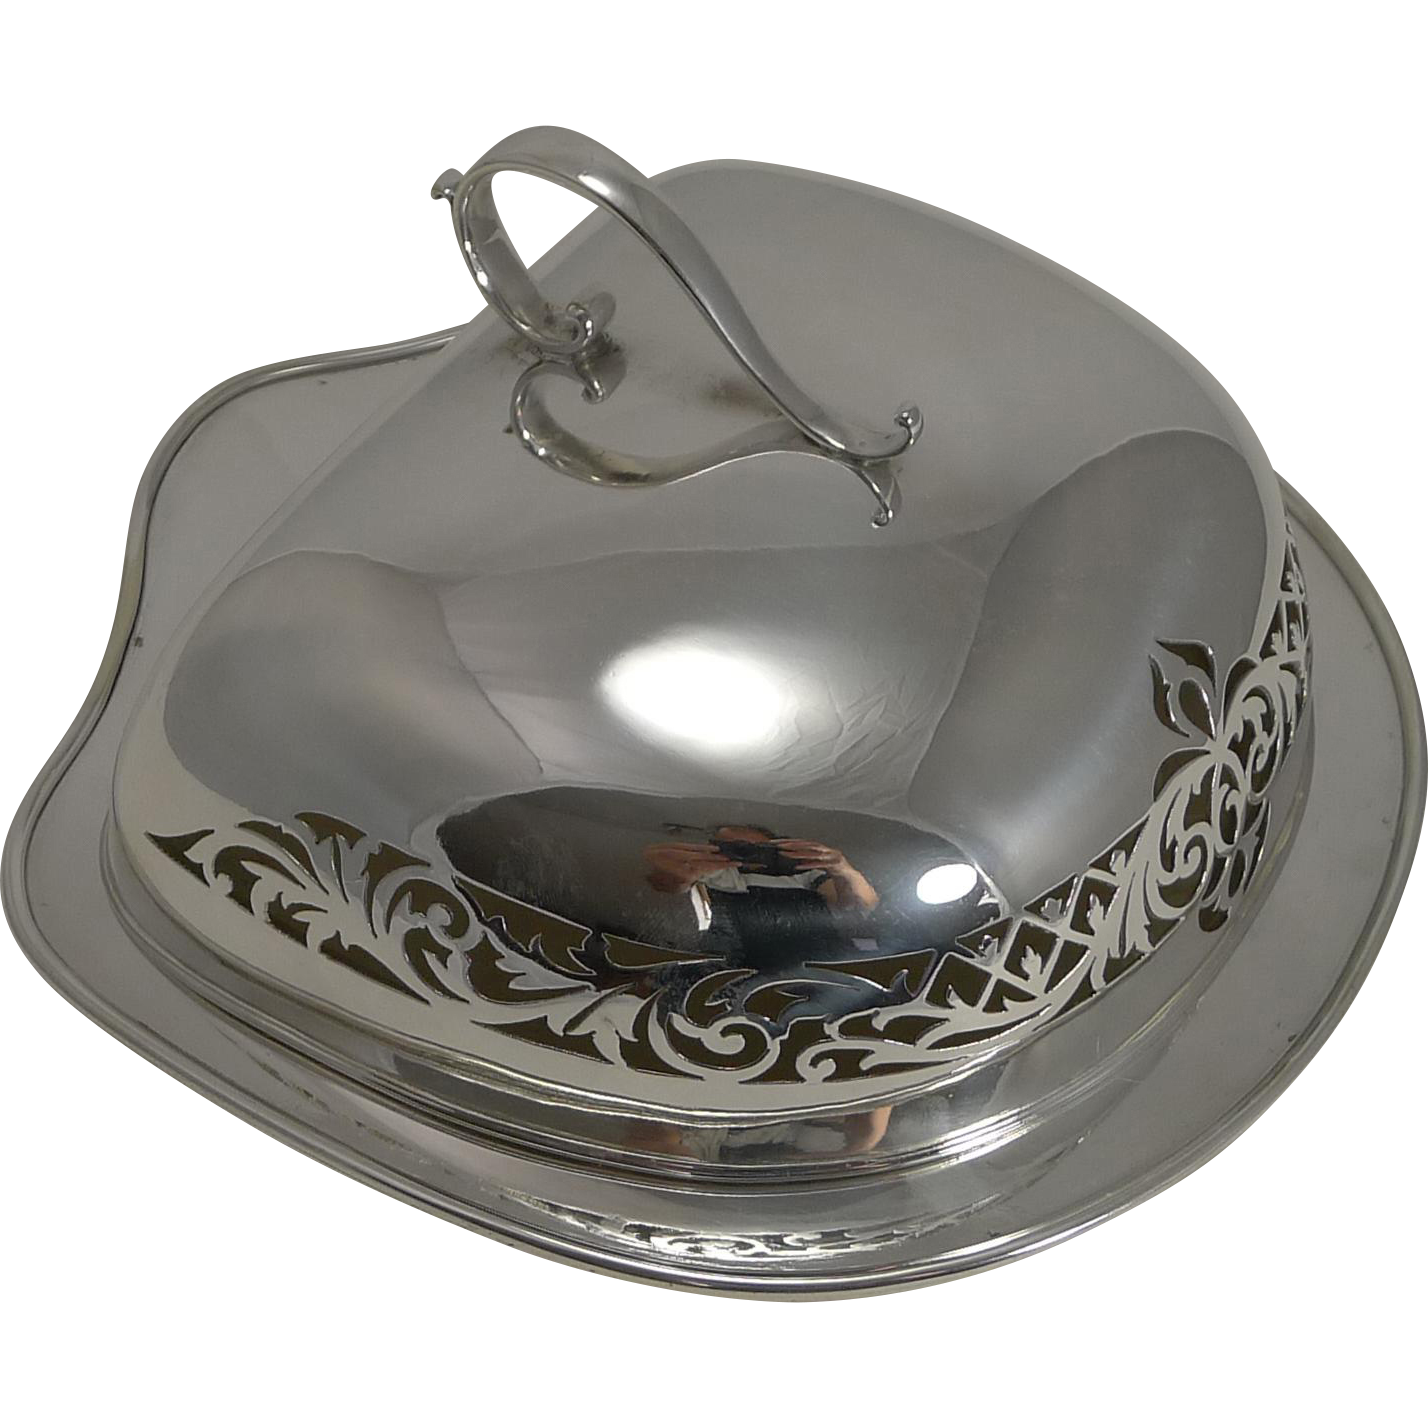 Antique Scottish Silver Plate and Glass Cheese Dish and Cover c.1900